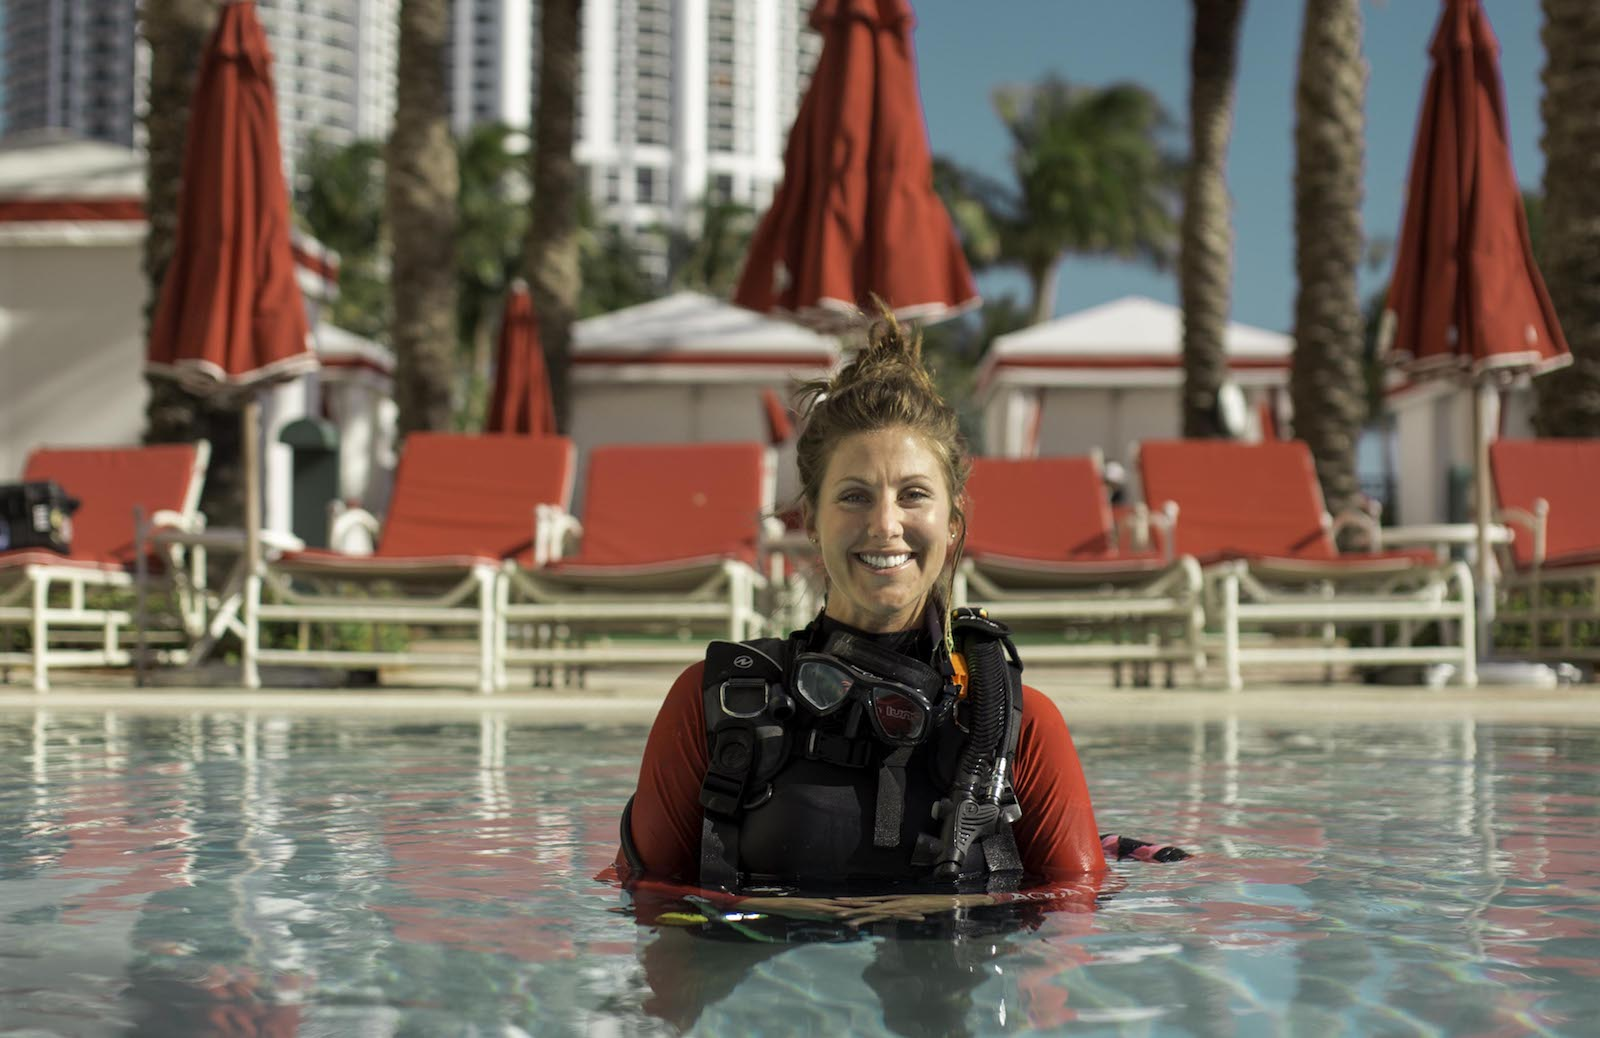 Woman in pool at Acqualina with scuba suit on.